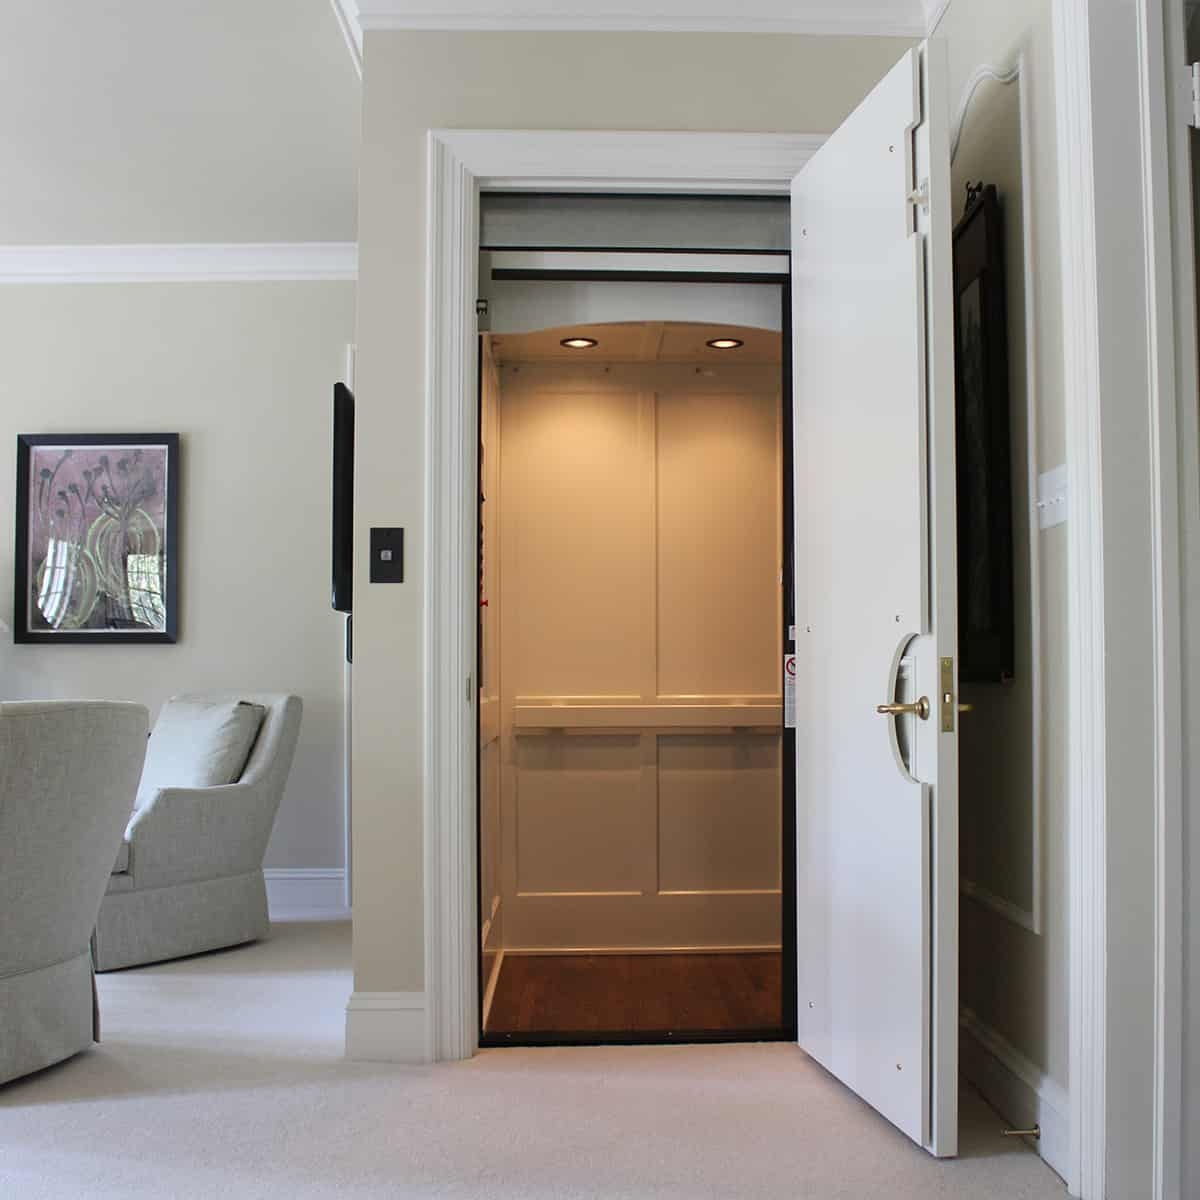 Stair Lifts Vs Home Elevators Which Is Best For Me | Stair Design For Seniors | World's | Contemporary | Steel | Unique | Indoor